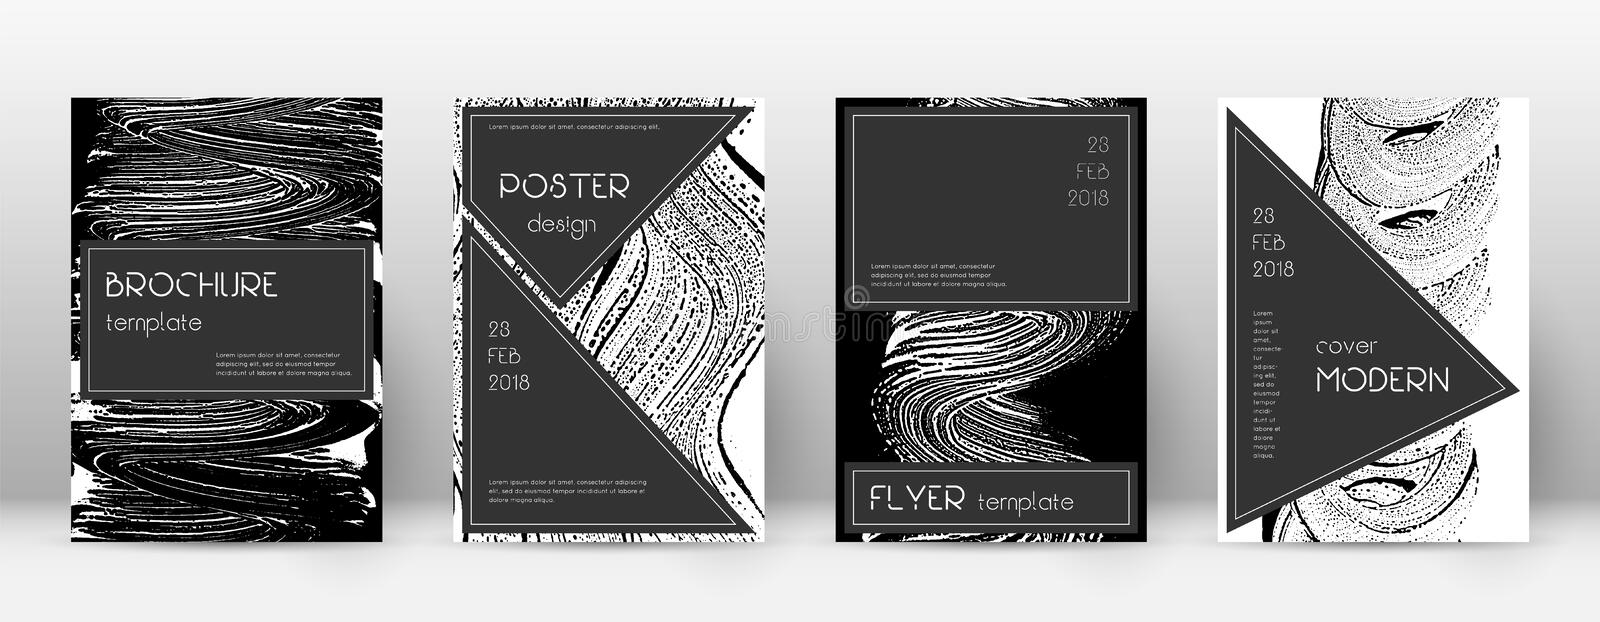 Cover page design template. Black brochure layout. Beauteous trendy abstract cover page. Black and w. Hite grunge texture background. Popular poster vector illustration